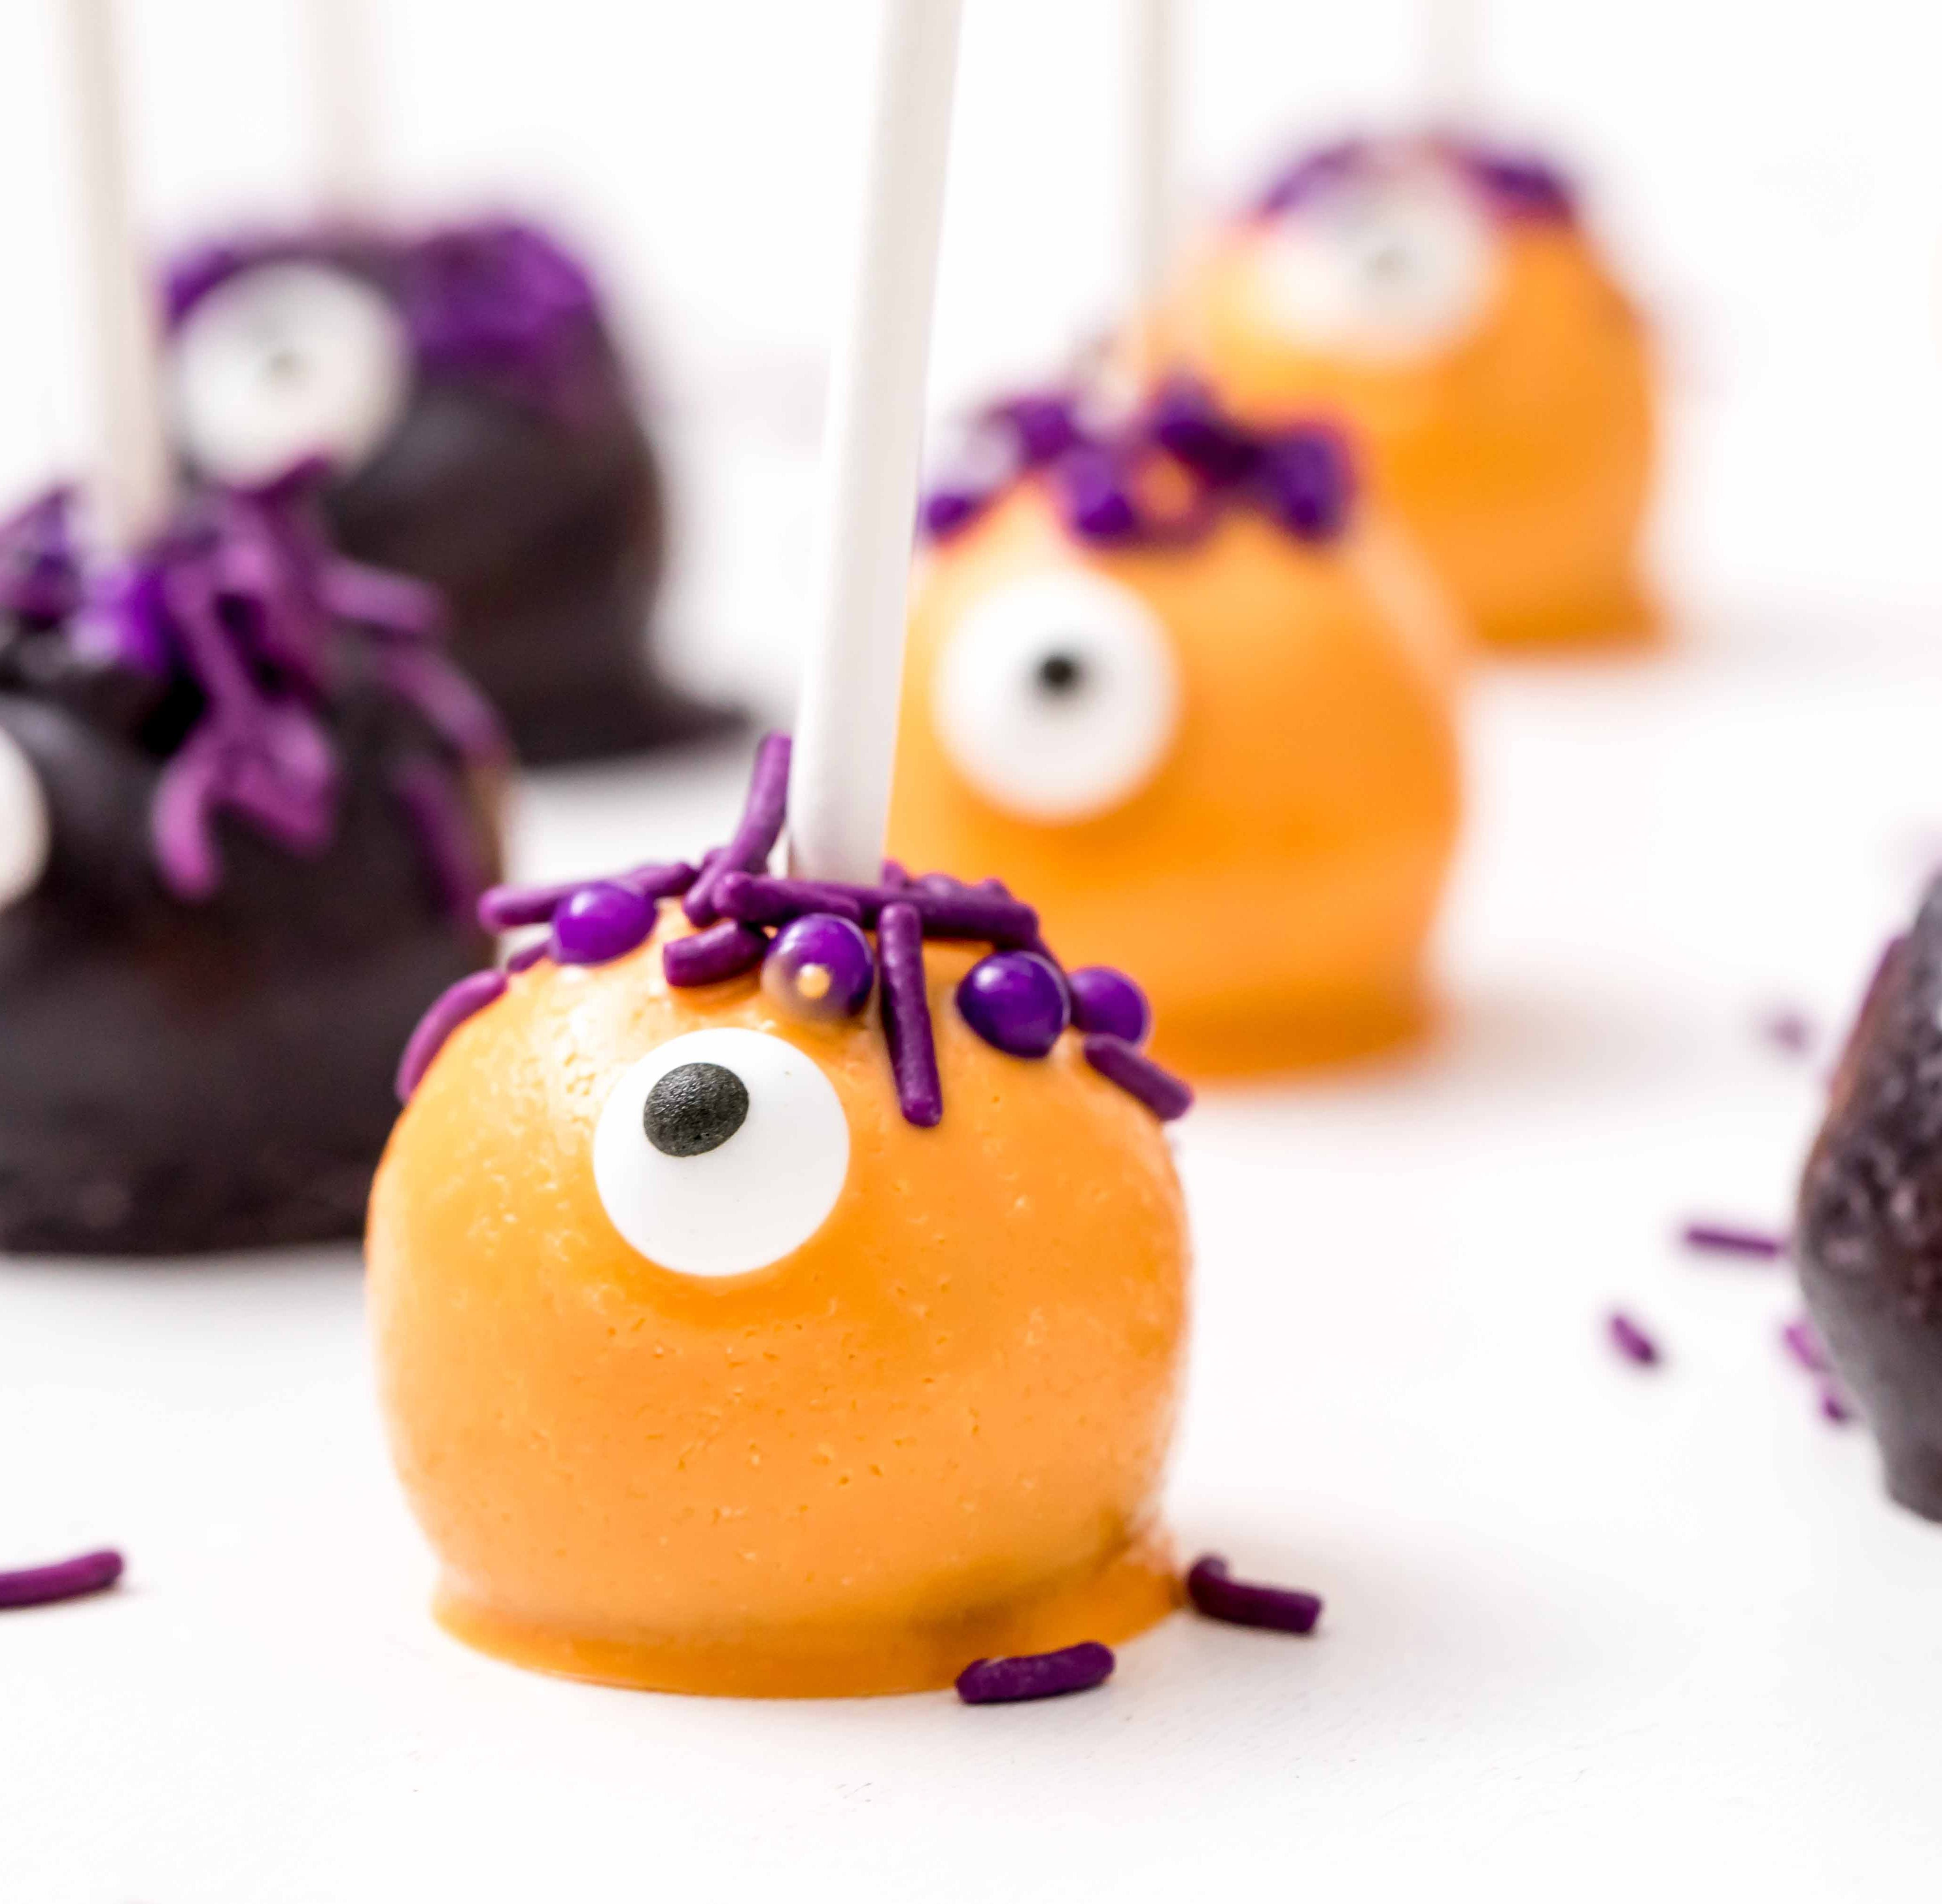 Halloween food ideas: Monster cake pops, jack o' lantern peppers and more party recipes